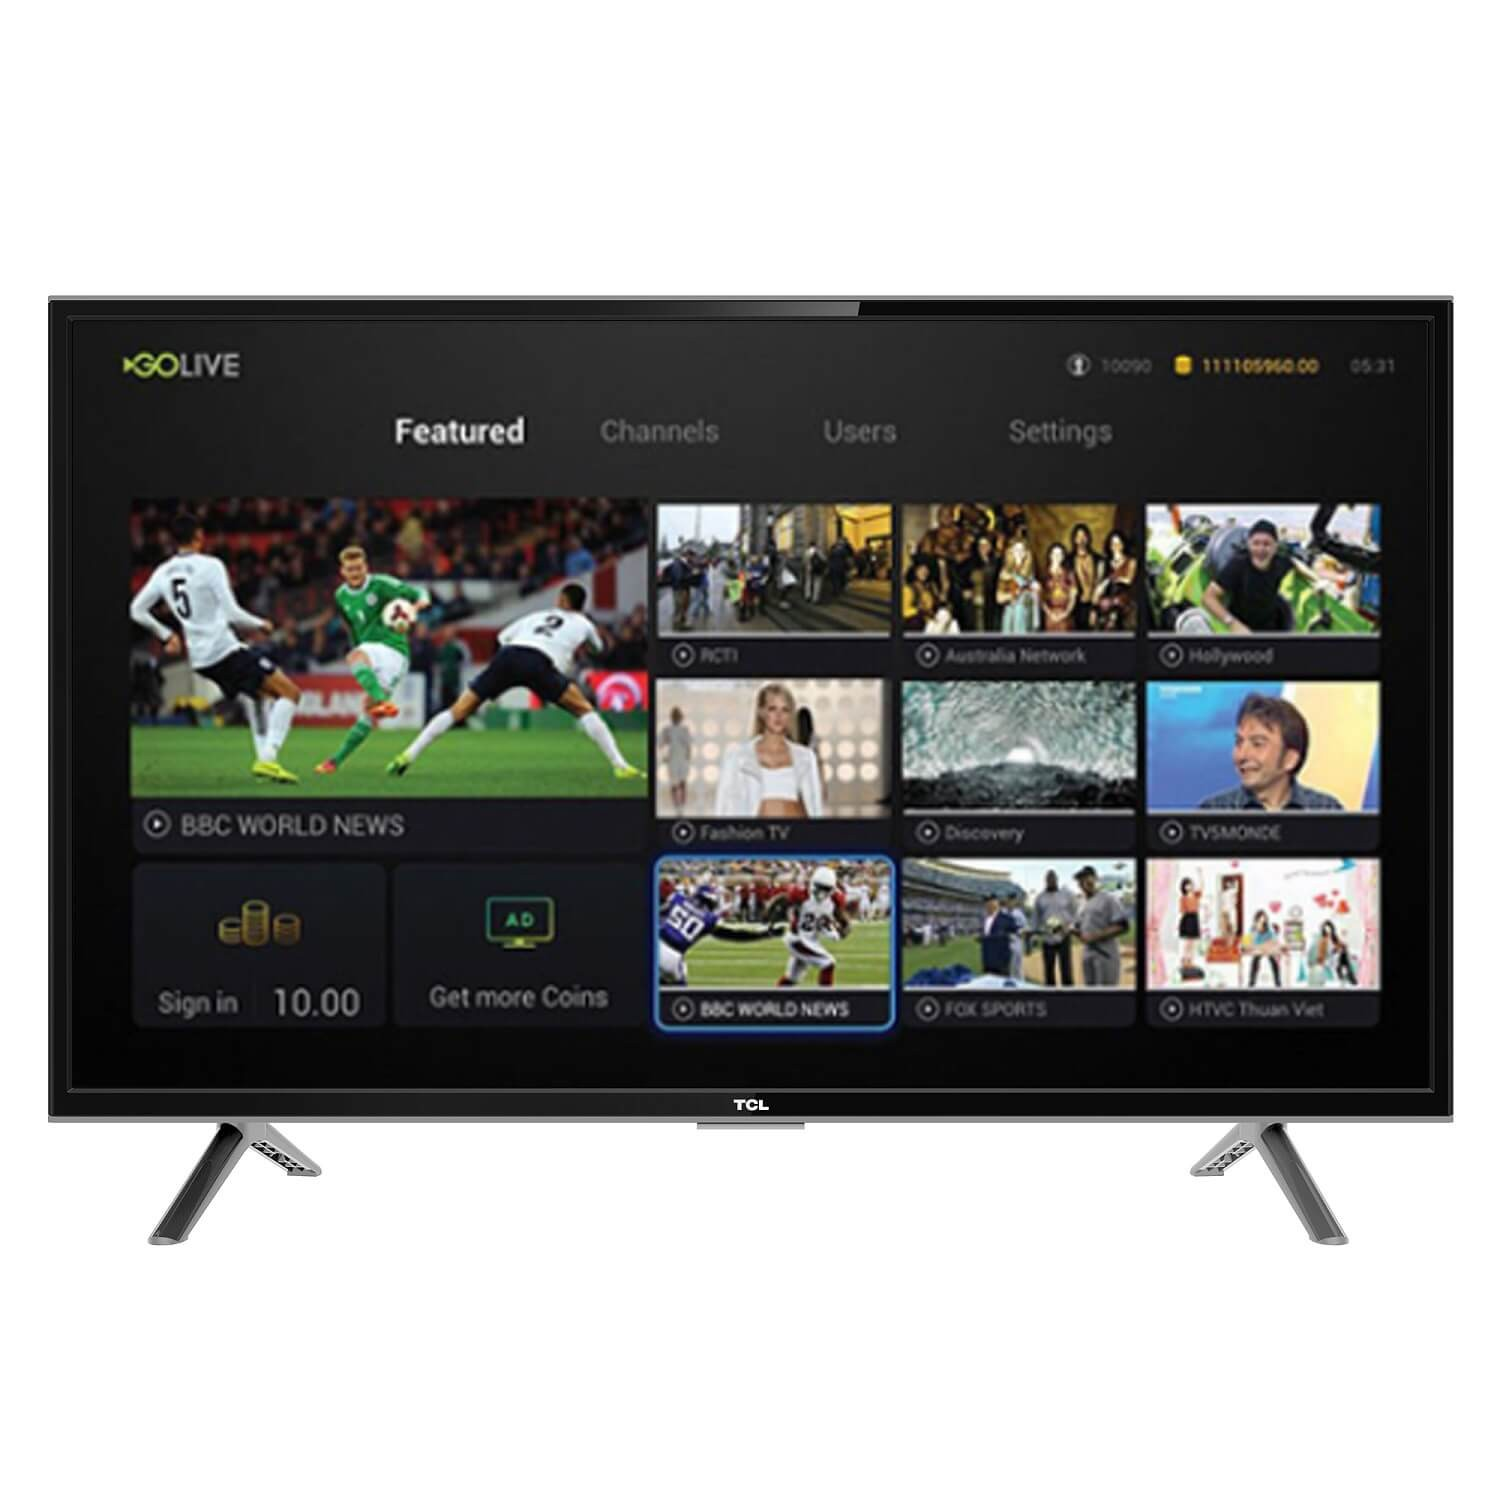 TCL 32-inch DIGITAL INTERNET TV - S4900 1